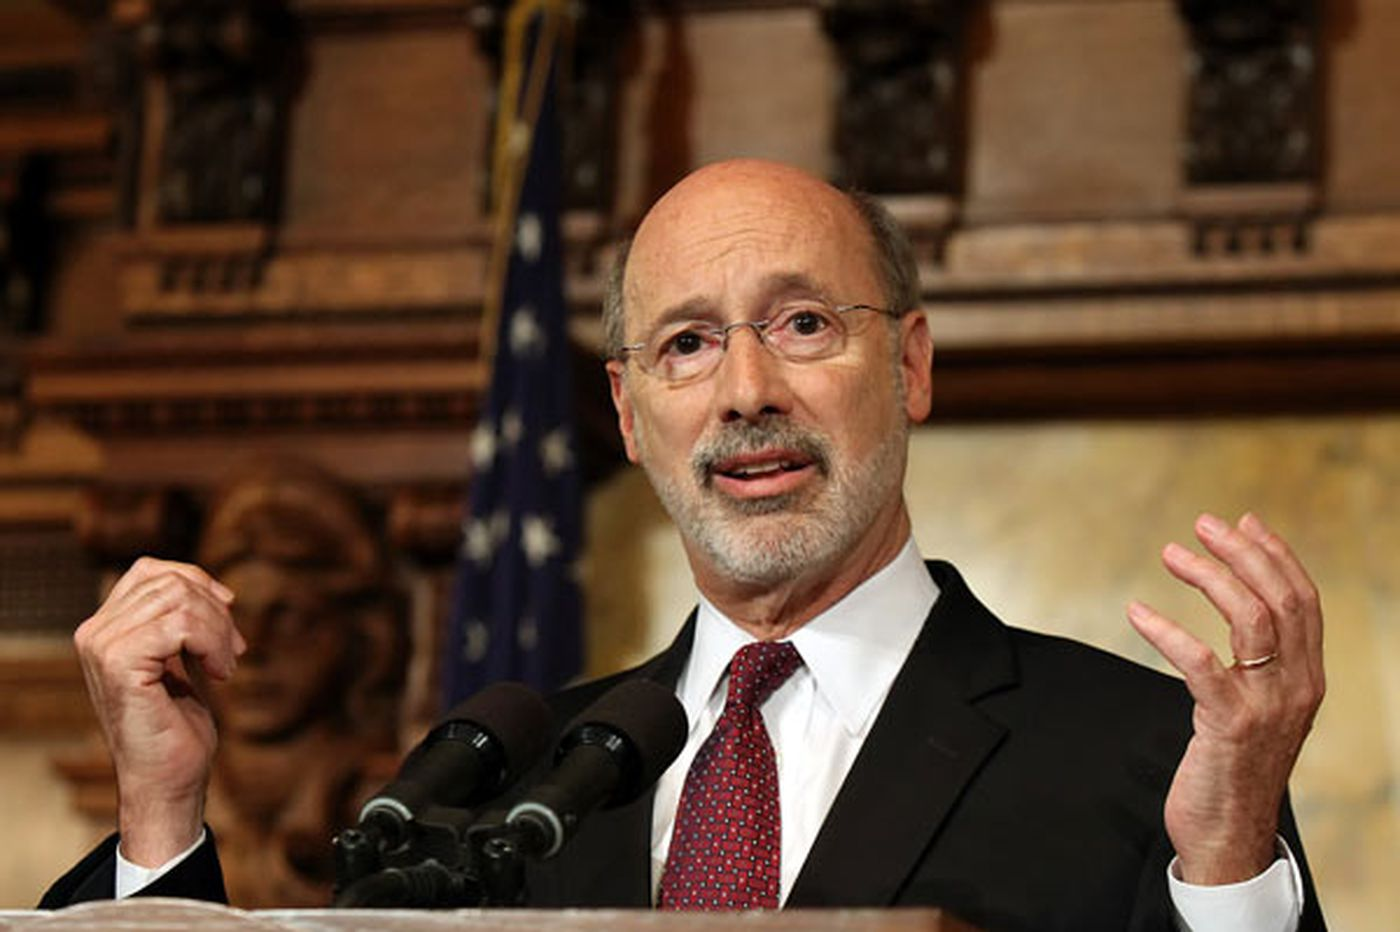 Poll: Voters blame GOP, not Wolf for budget stalemate